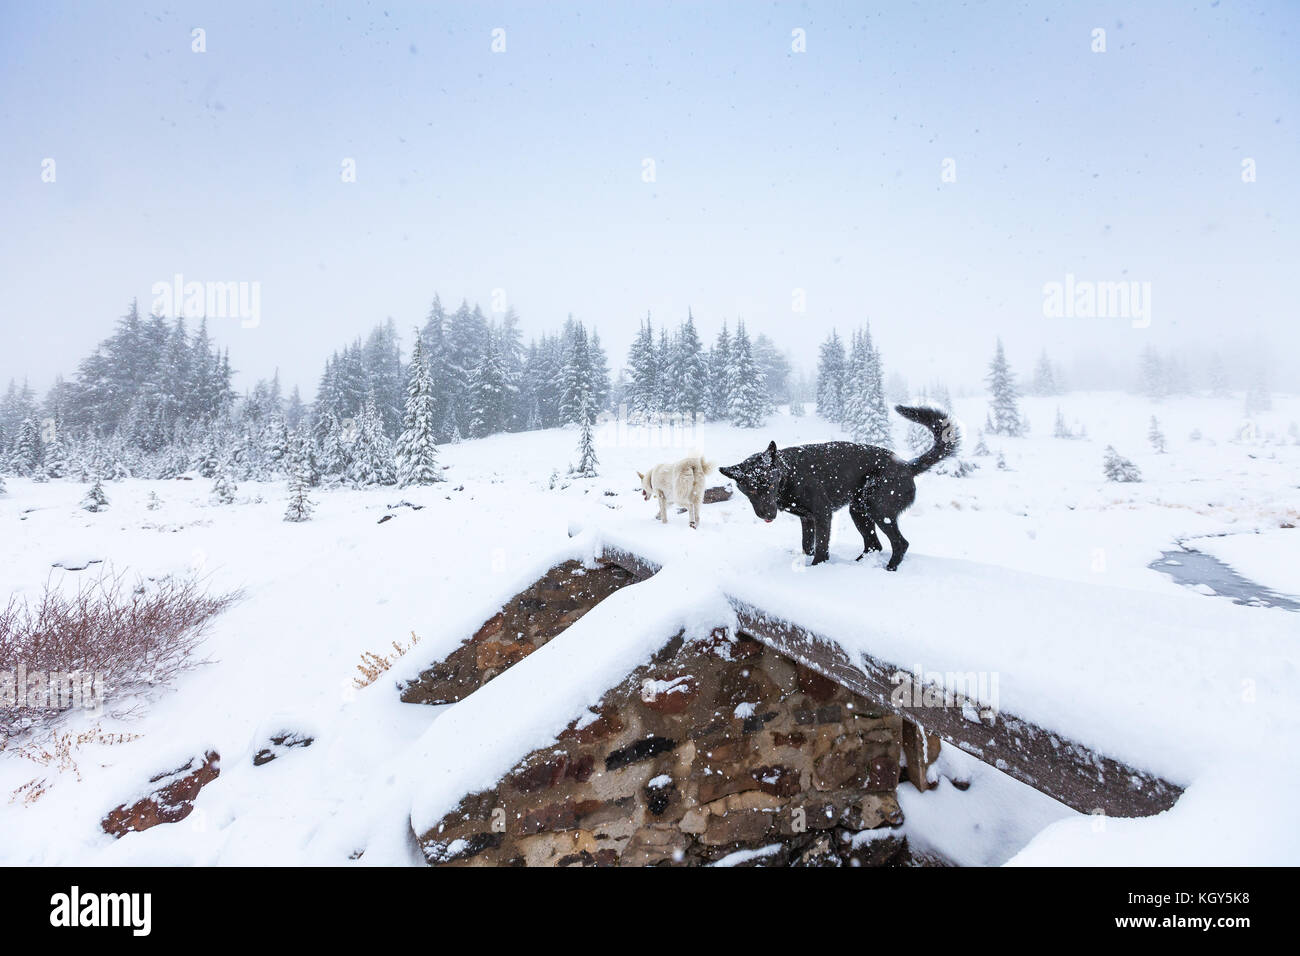 Dogs cross a snowy bridges during a winter storm in the wilderness of Bend, Oregon. - Stock Image